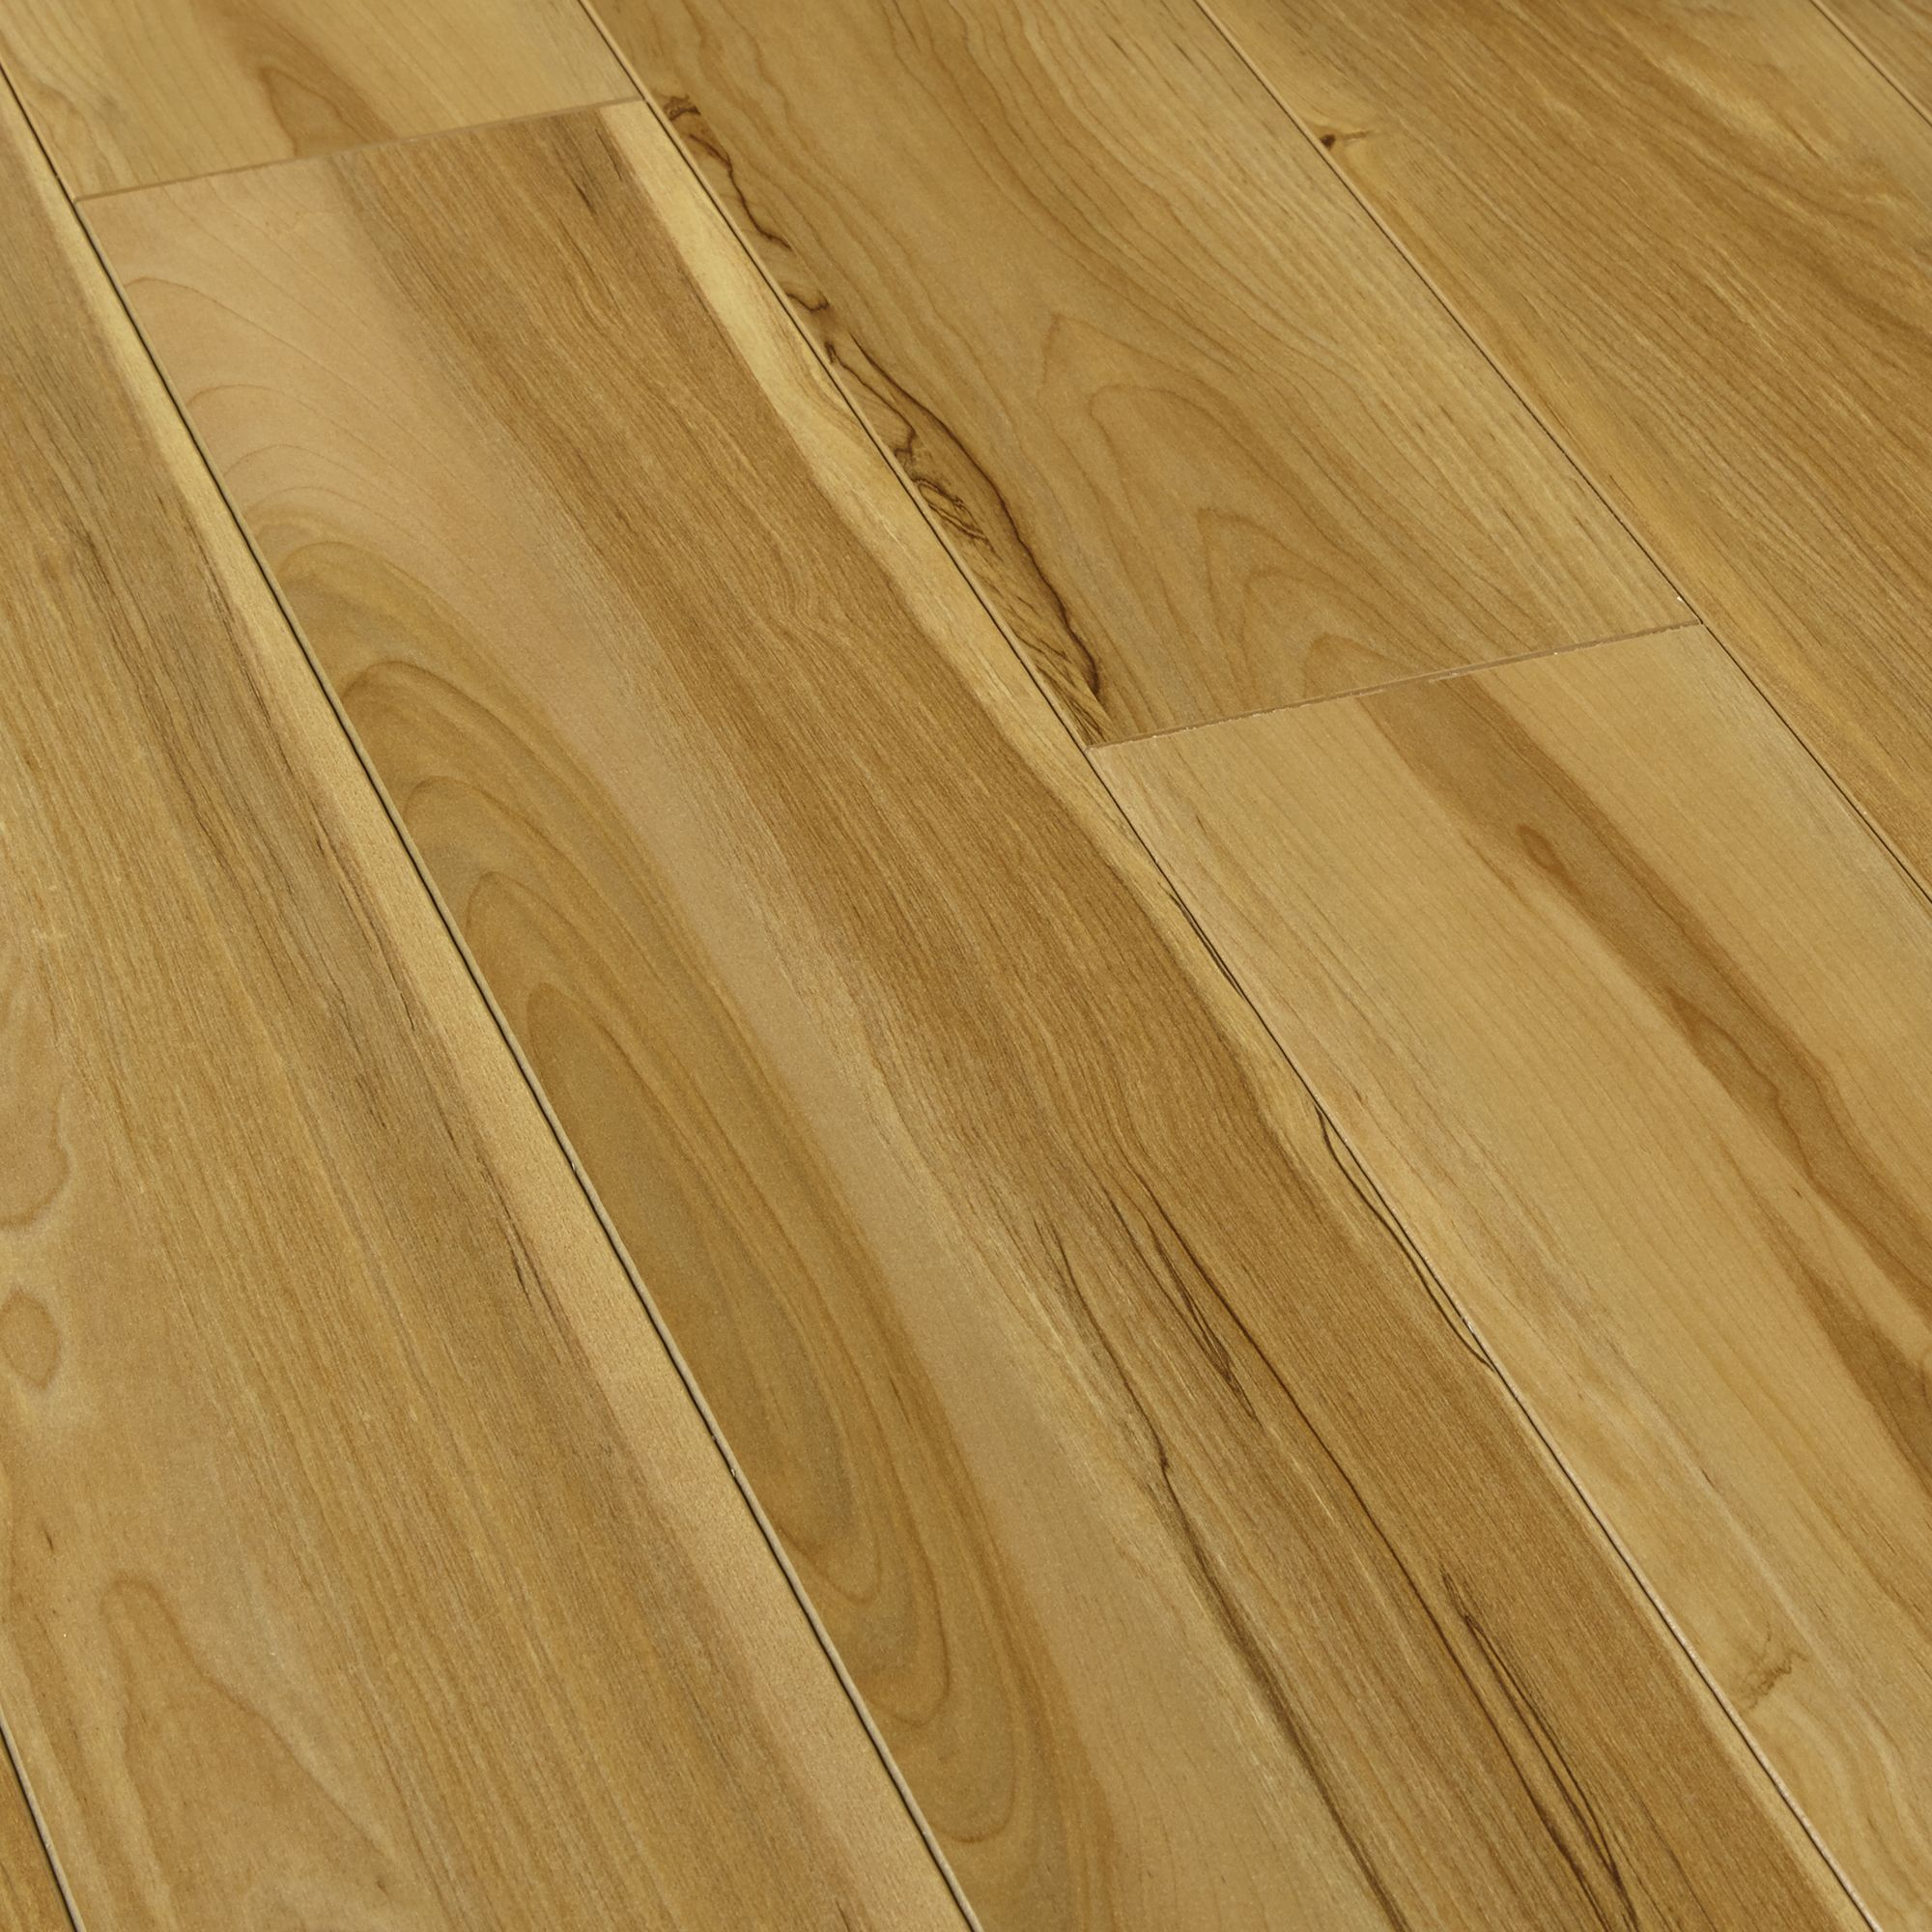 Scherzo natural light walnut effect laminate flooring for Walnut laminate flooring